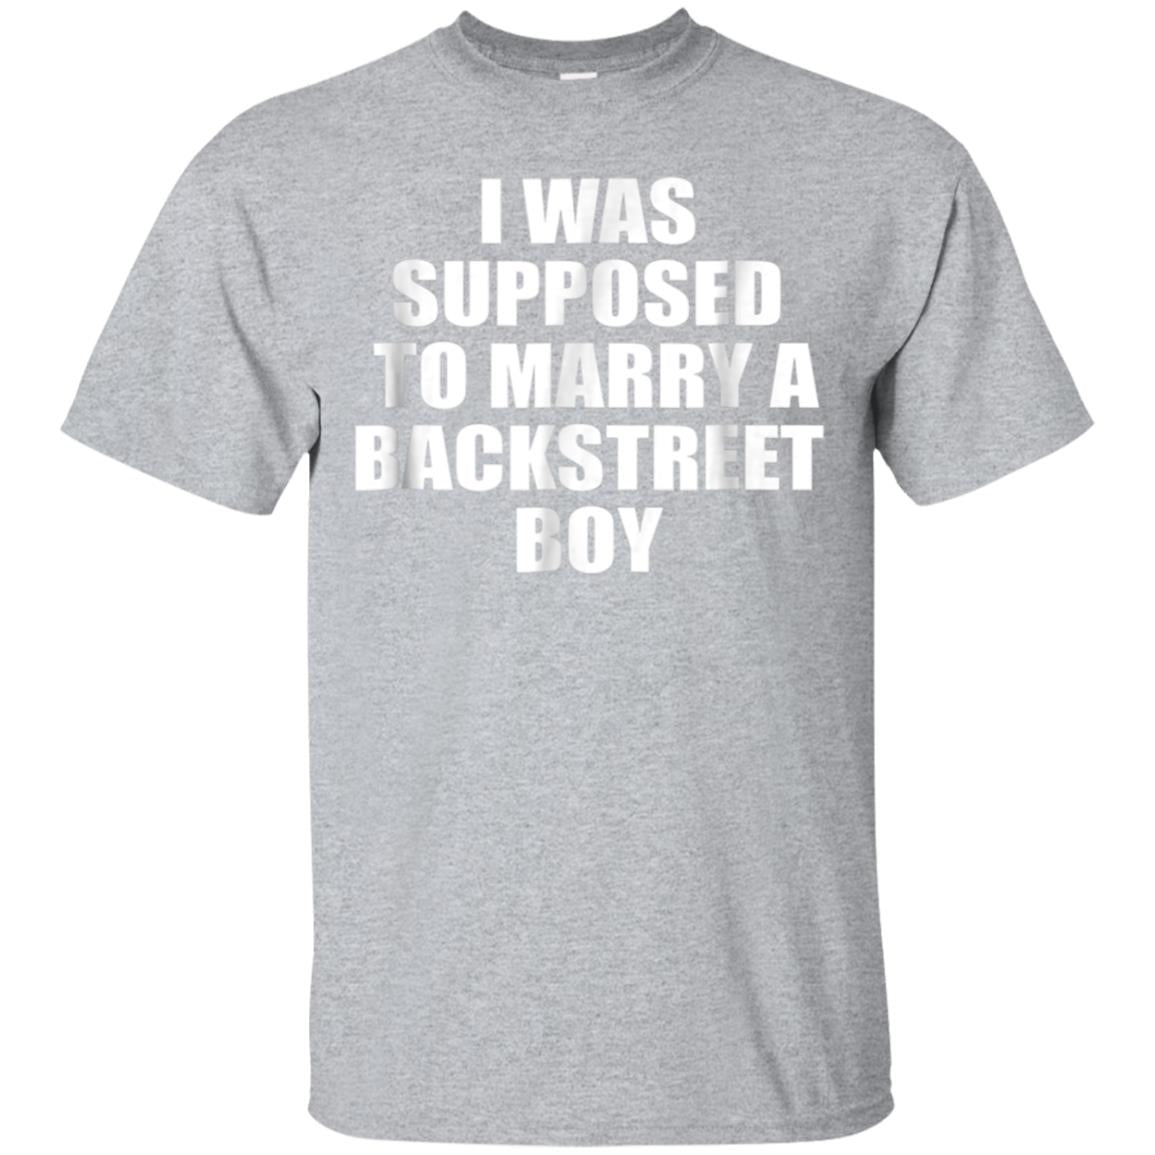 I Was Supposed to Marry a Backstreet Boy T-shirt 99promocode